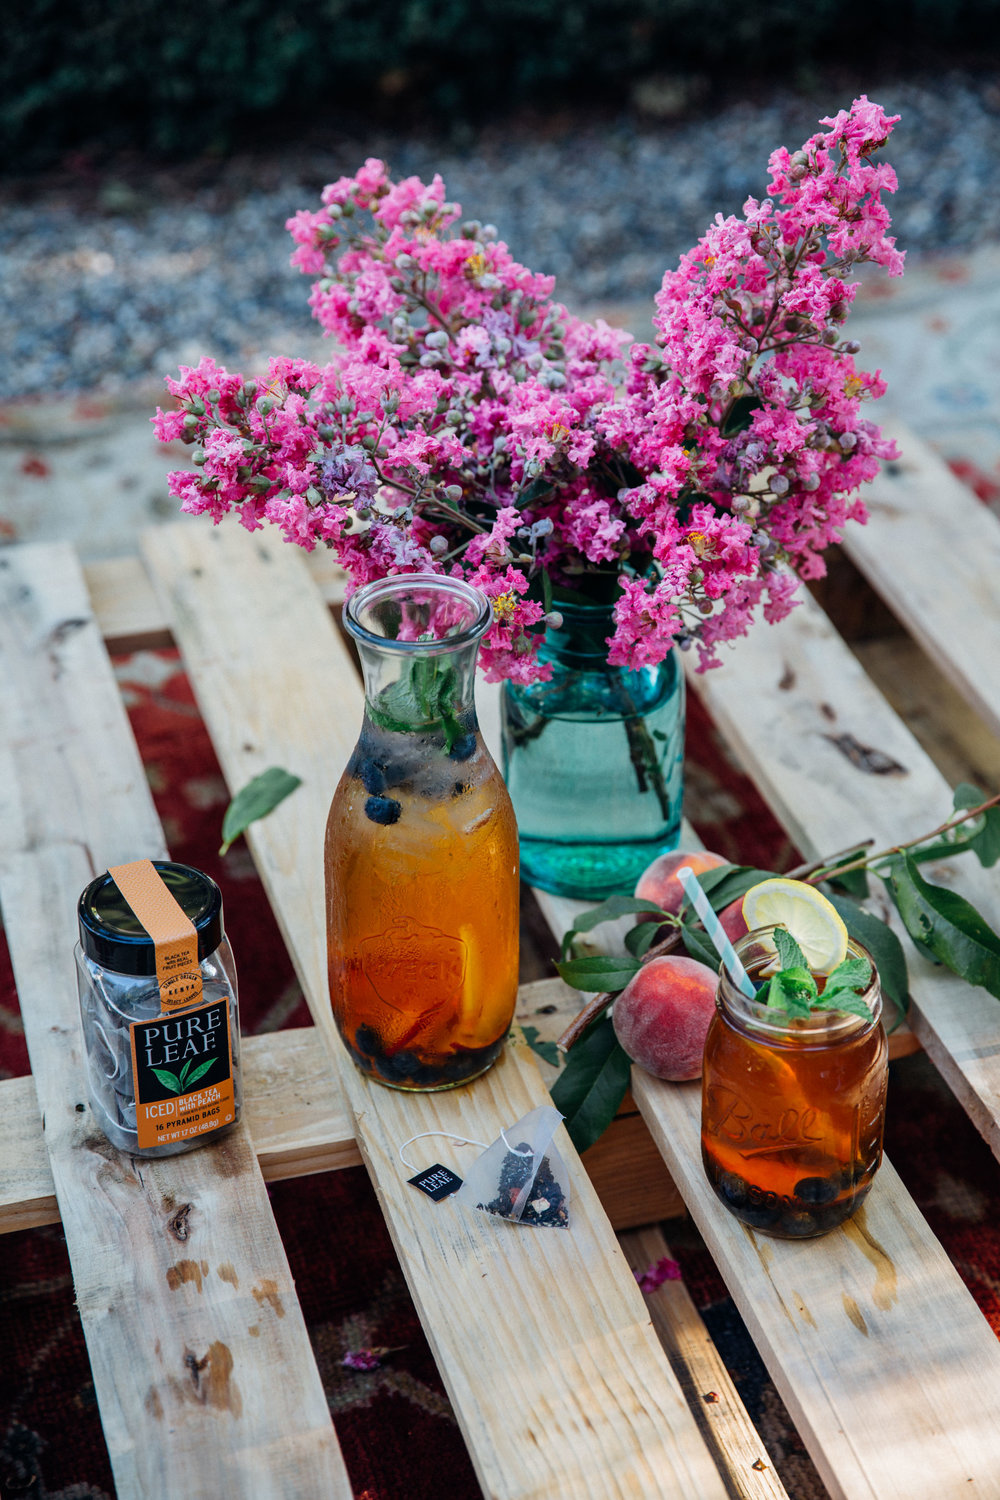 Pure Leaf Iced Black Tea with Peach Flavor - by Madeline Lu - @lumadeline